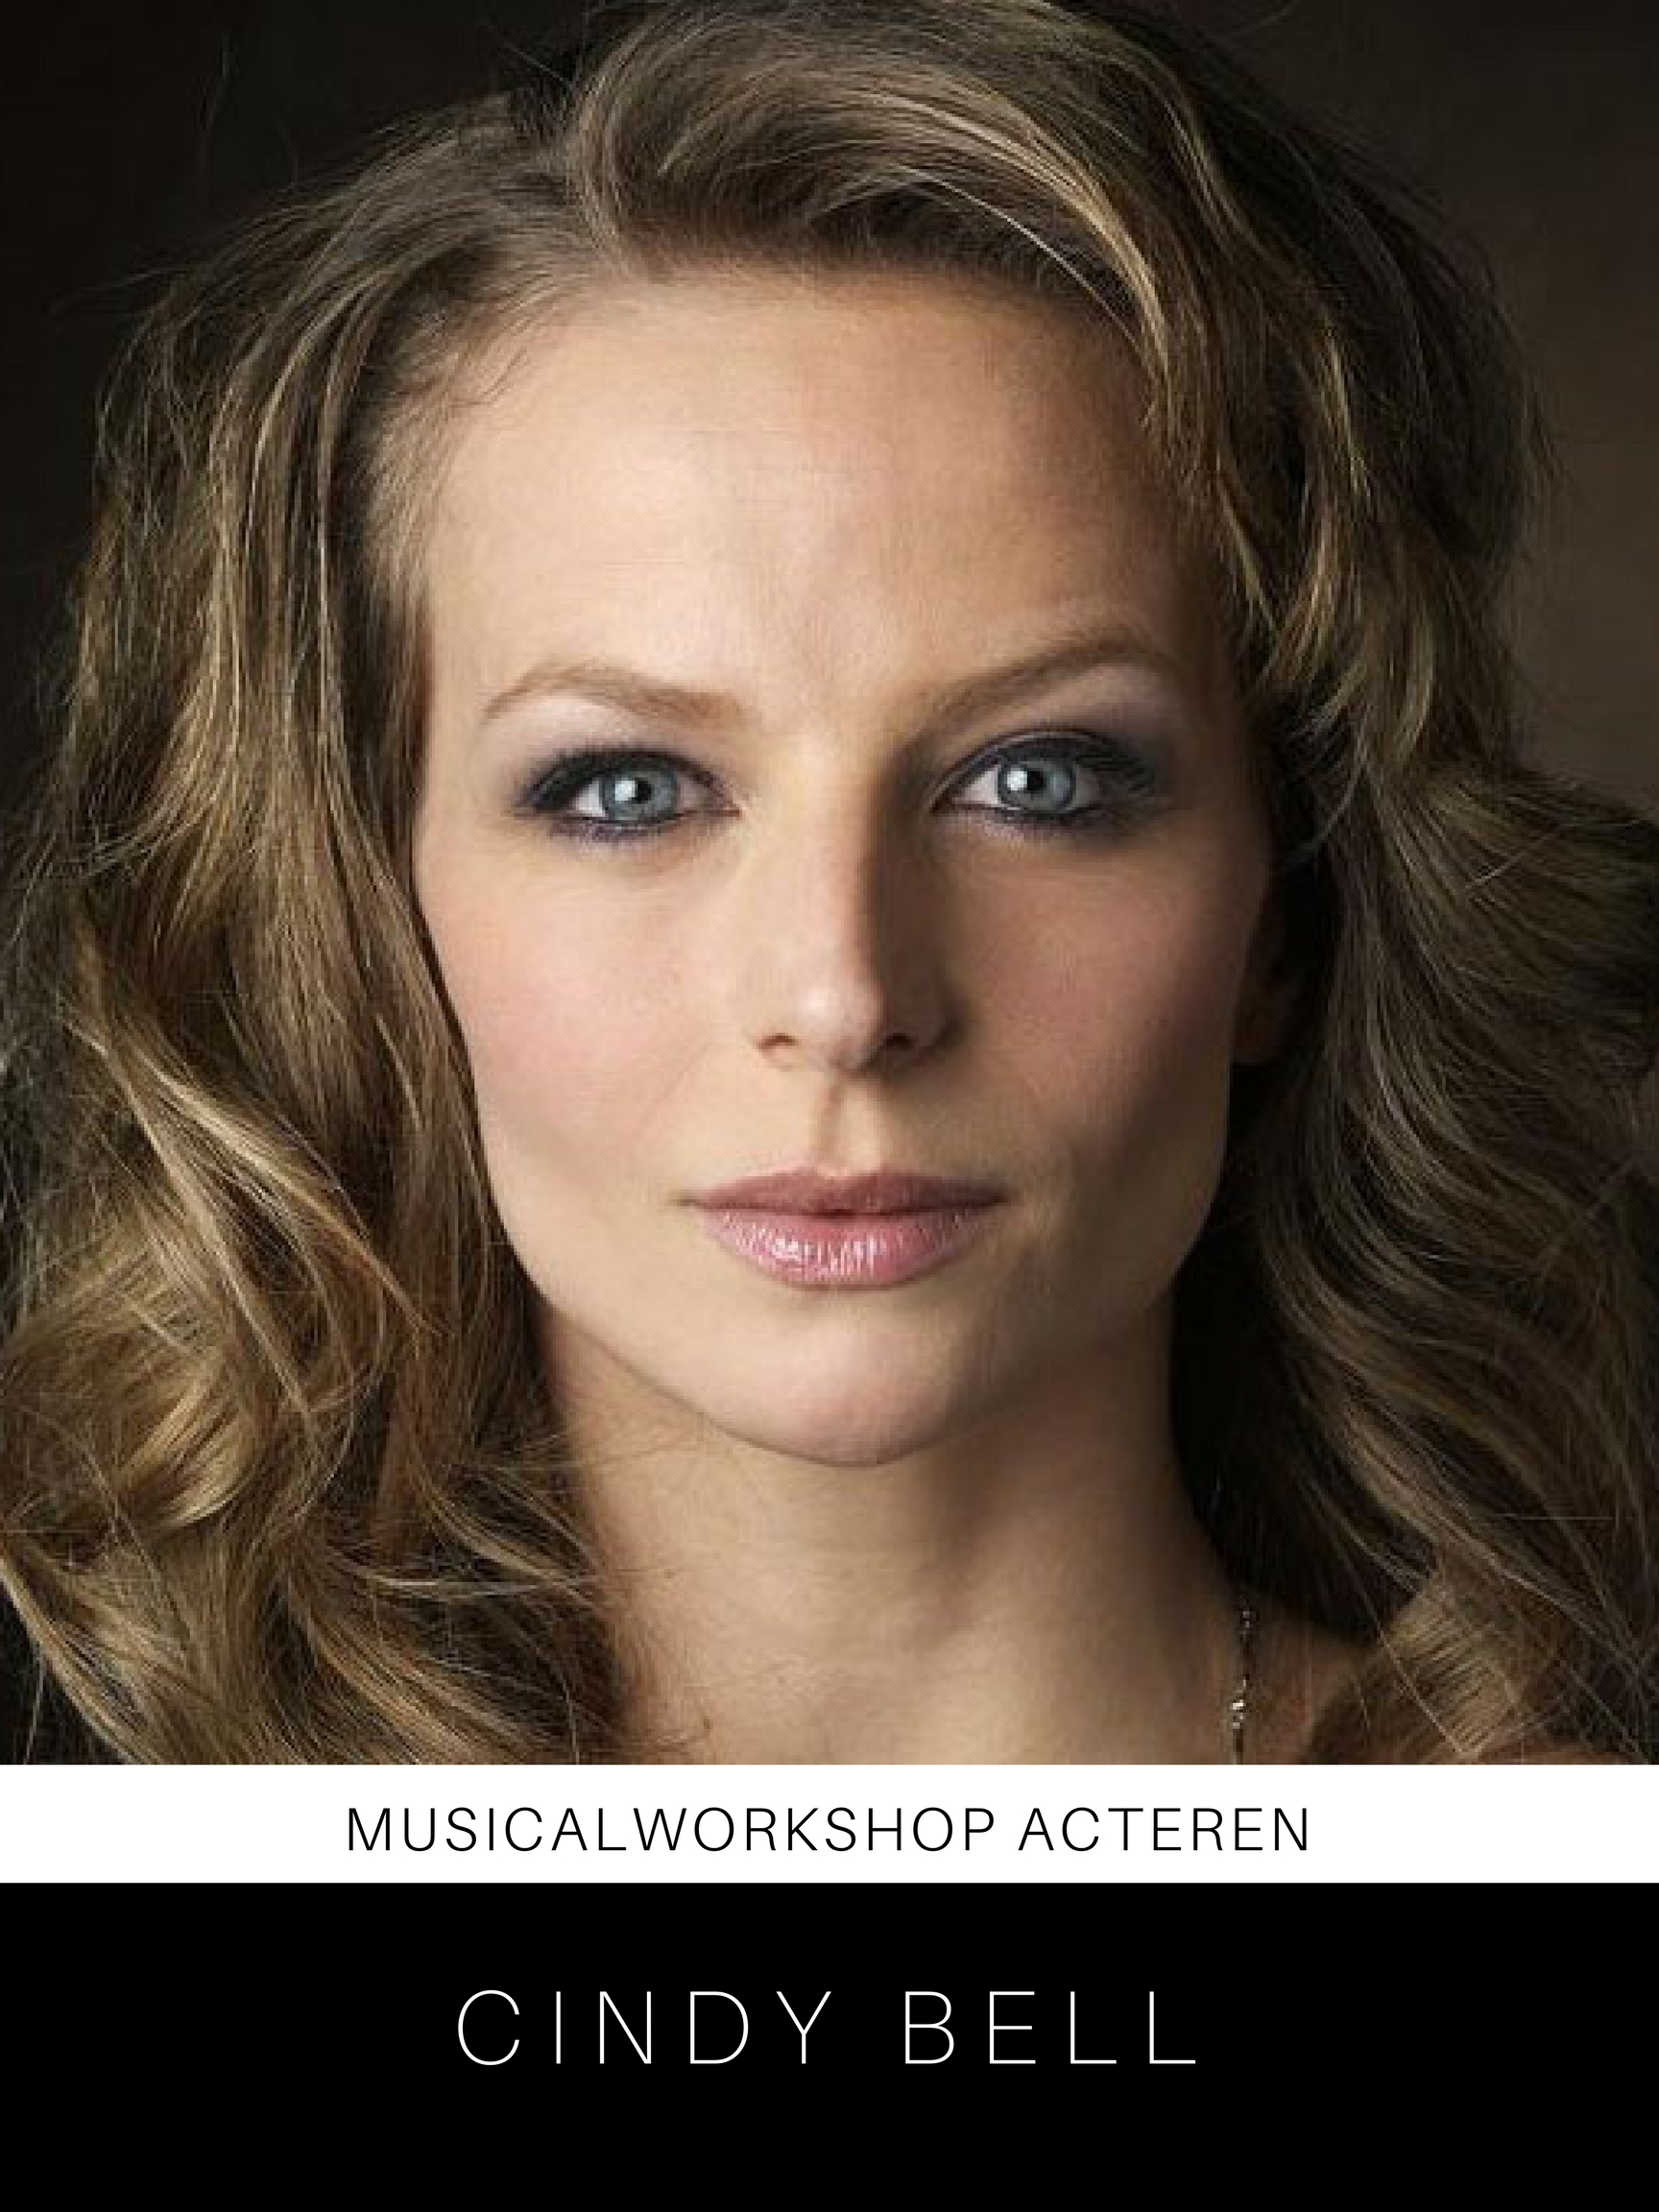 Musicalworkshop - Acteren